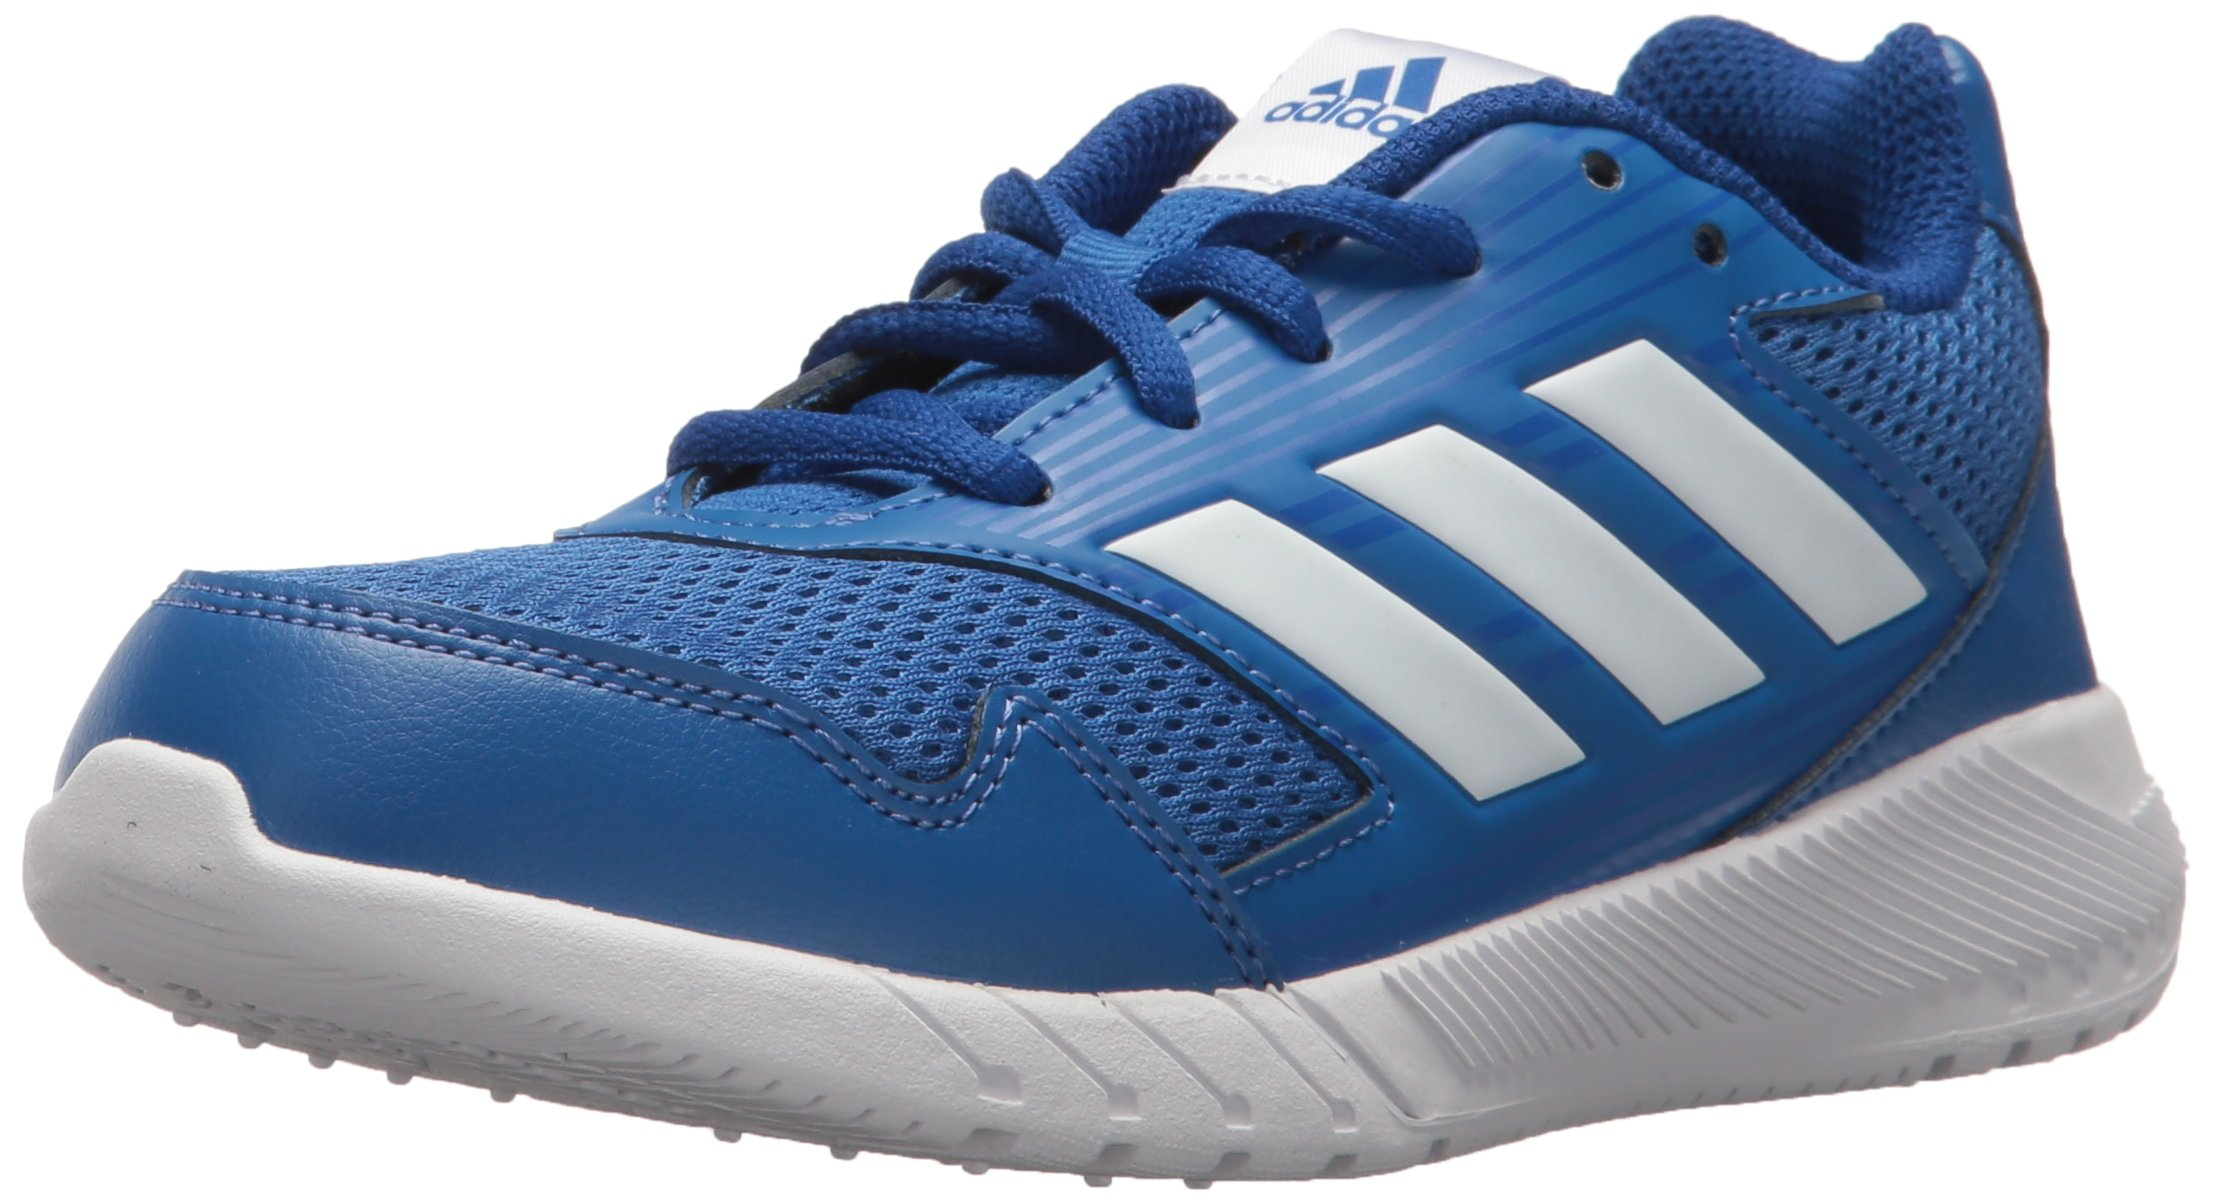 151324ce017c2 Cheap Old School Adidas, find Old School Adidas deals on line at ...